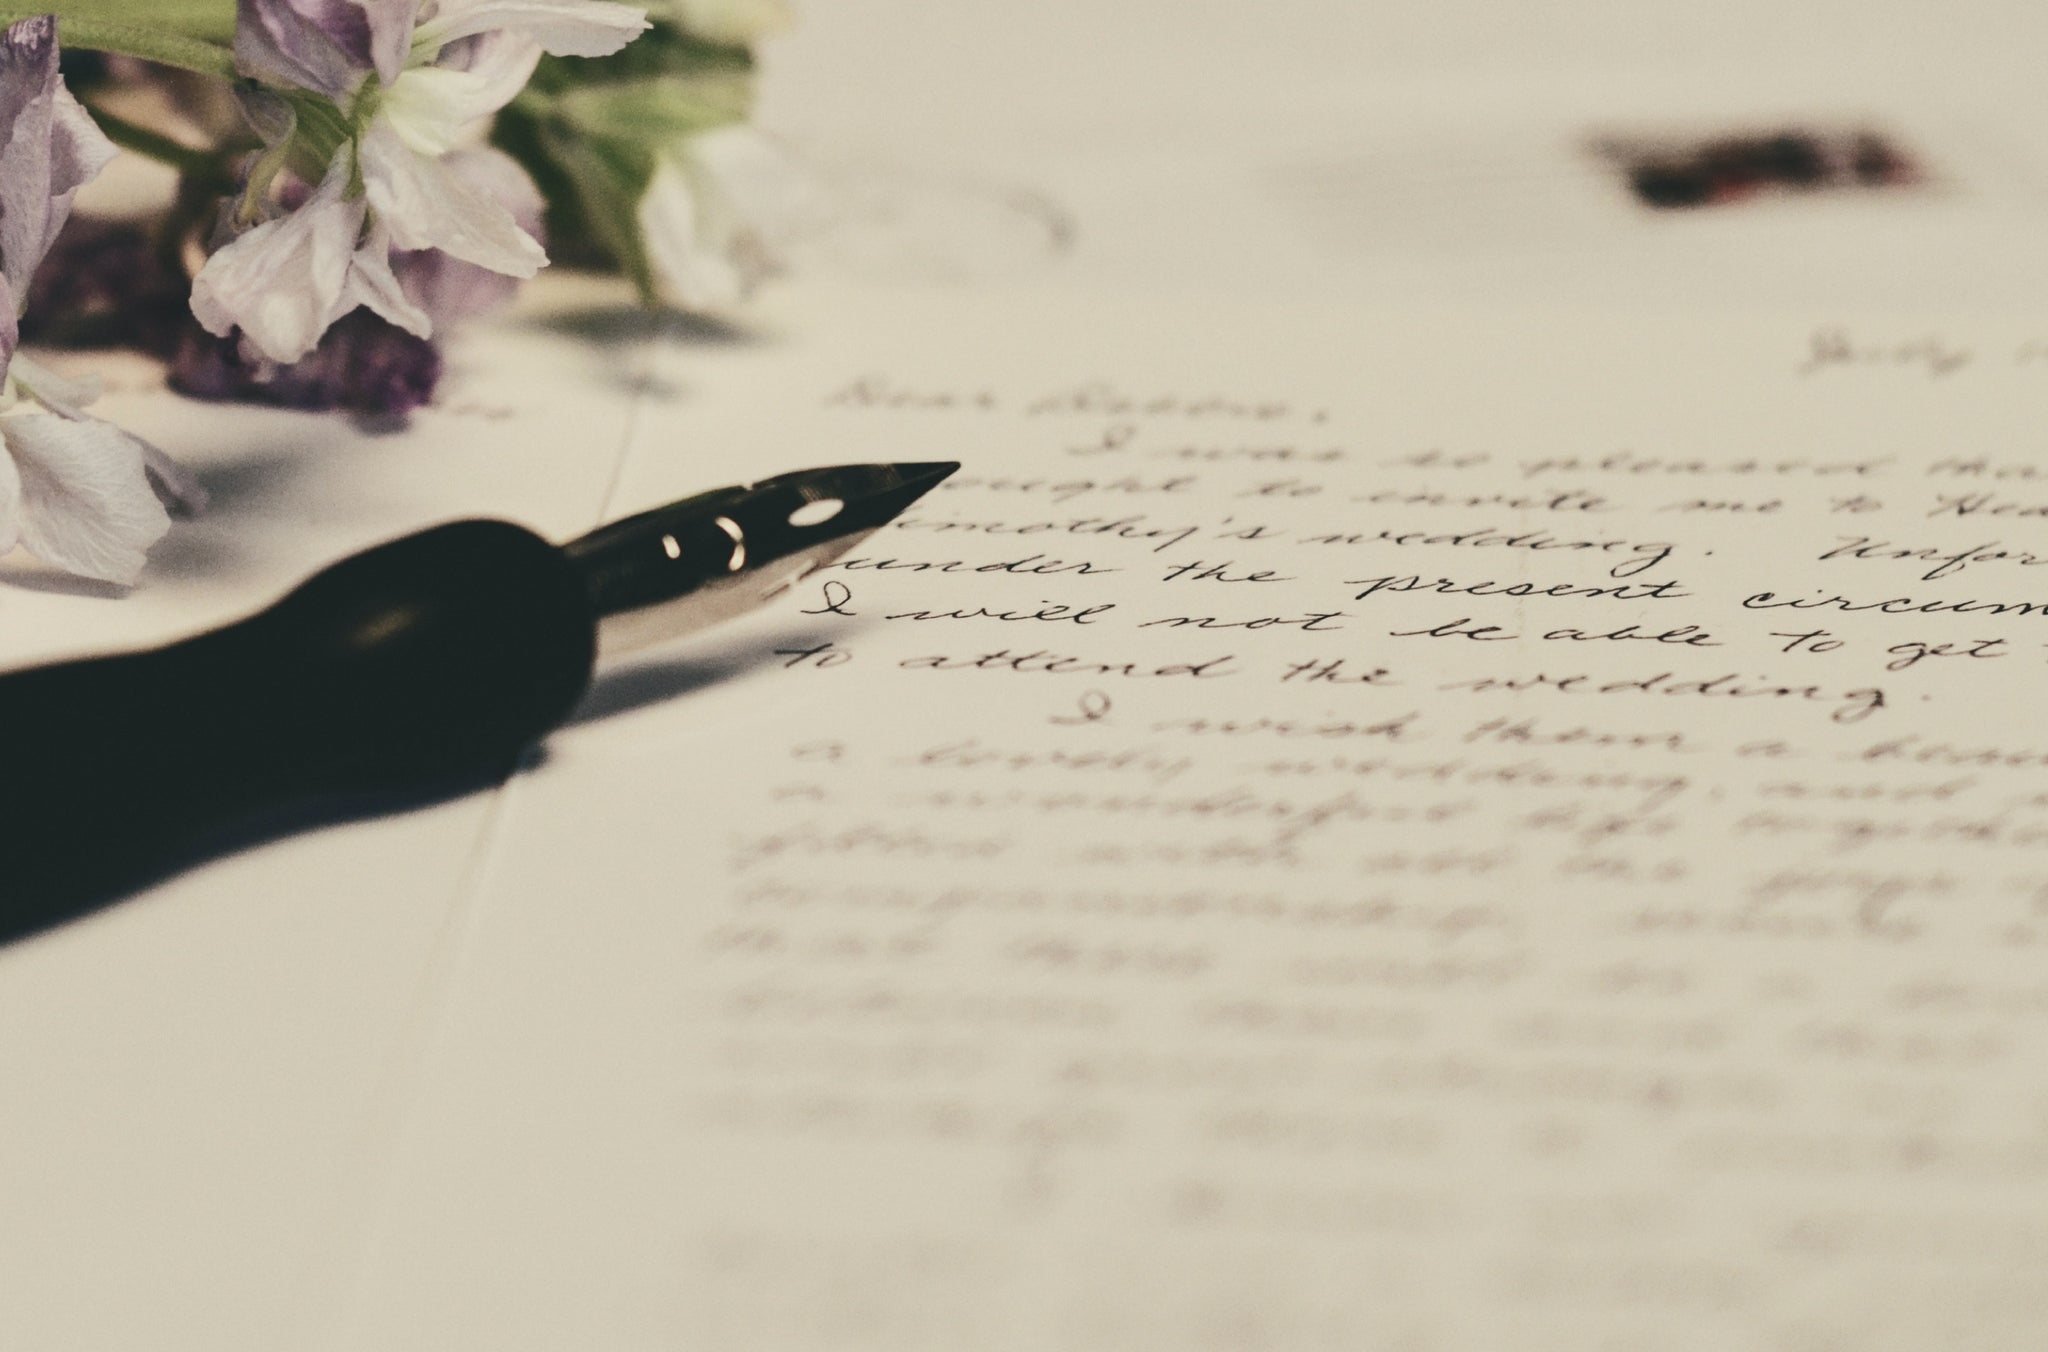 An elegant pen has been used to write a love letter - one of the most heartfelt and timeless gestures you can make | Talsam